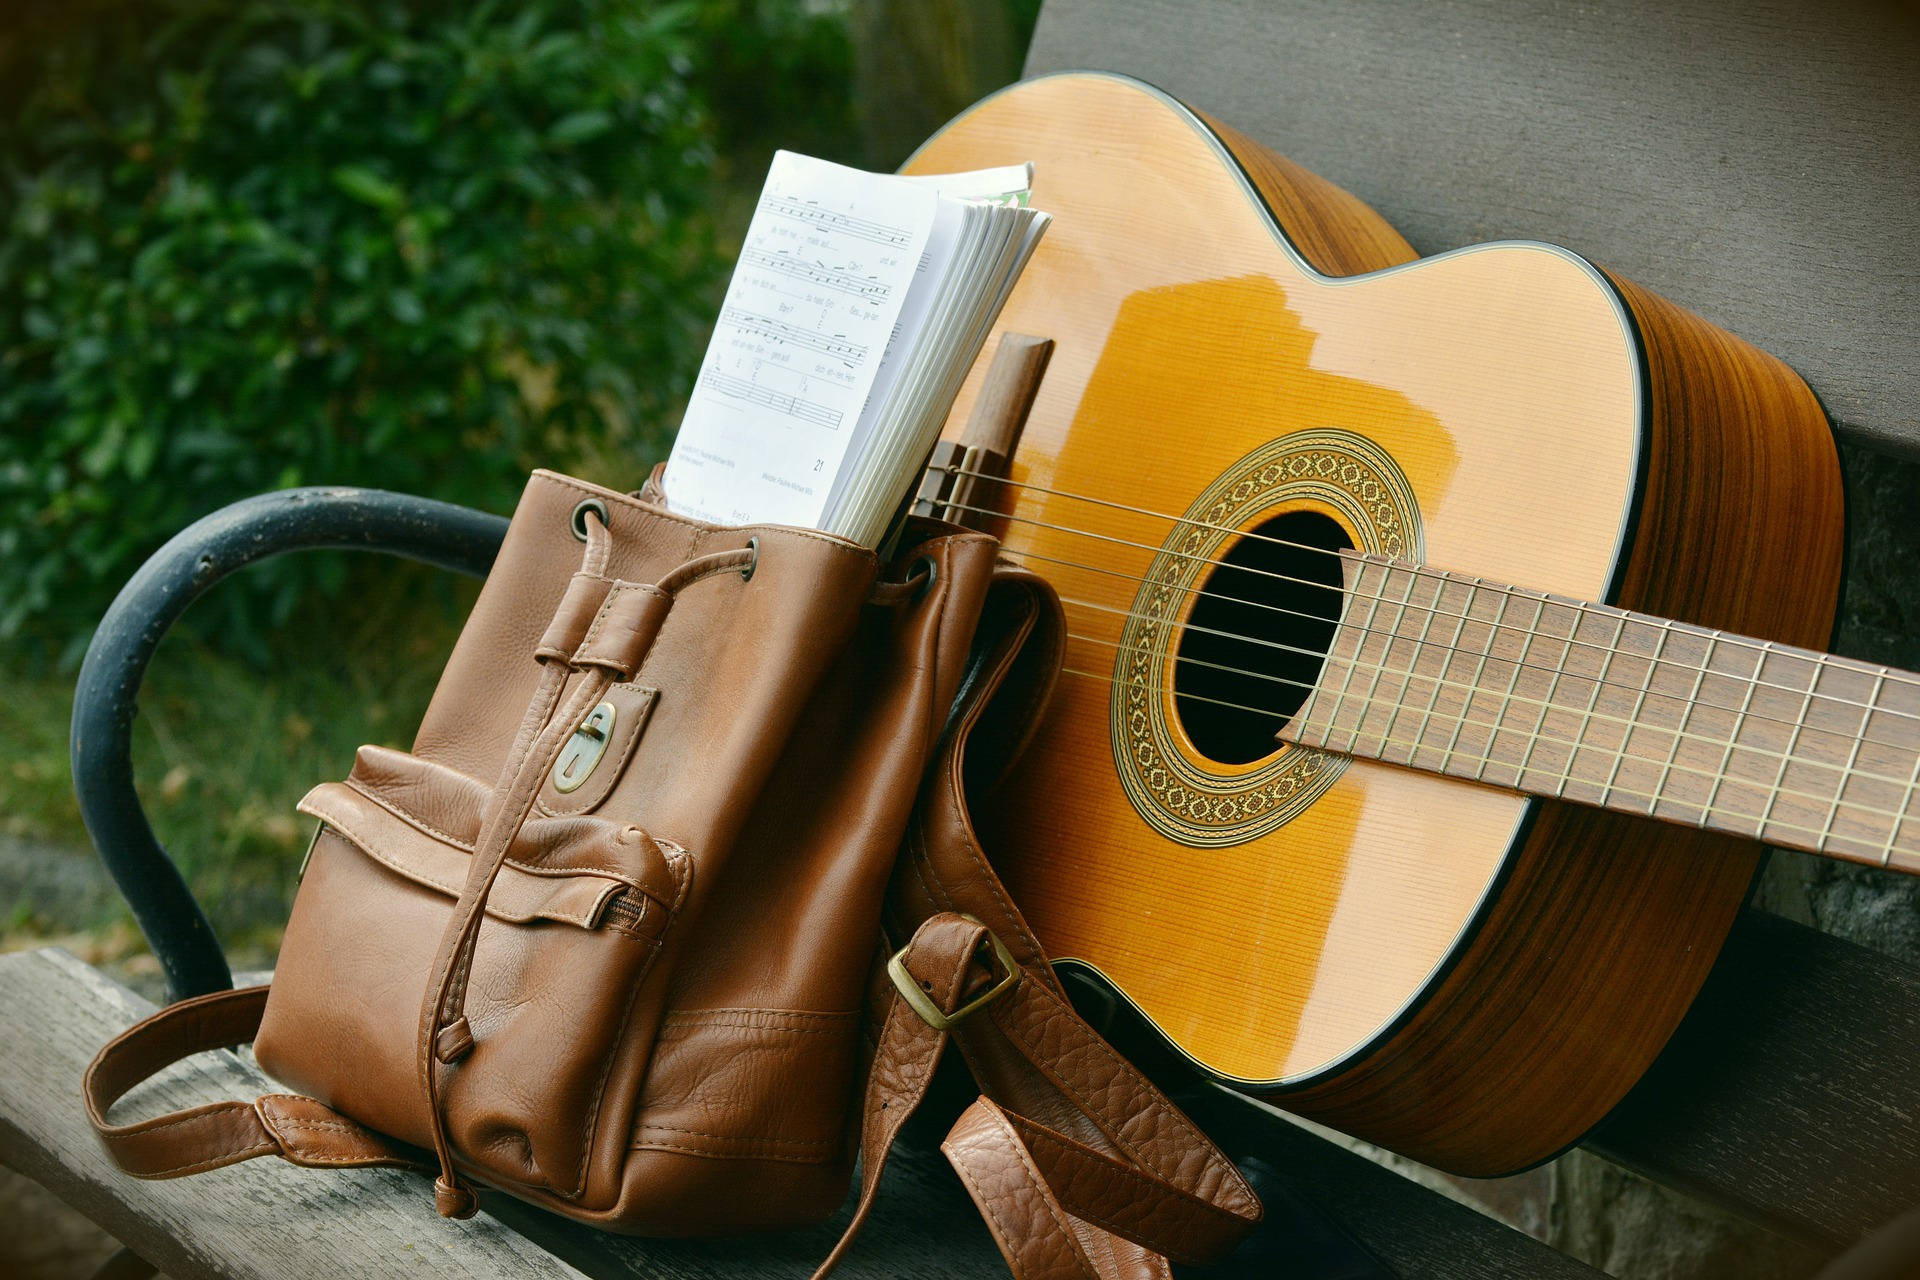 Image shows a guitar next to a bag with a score.